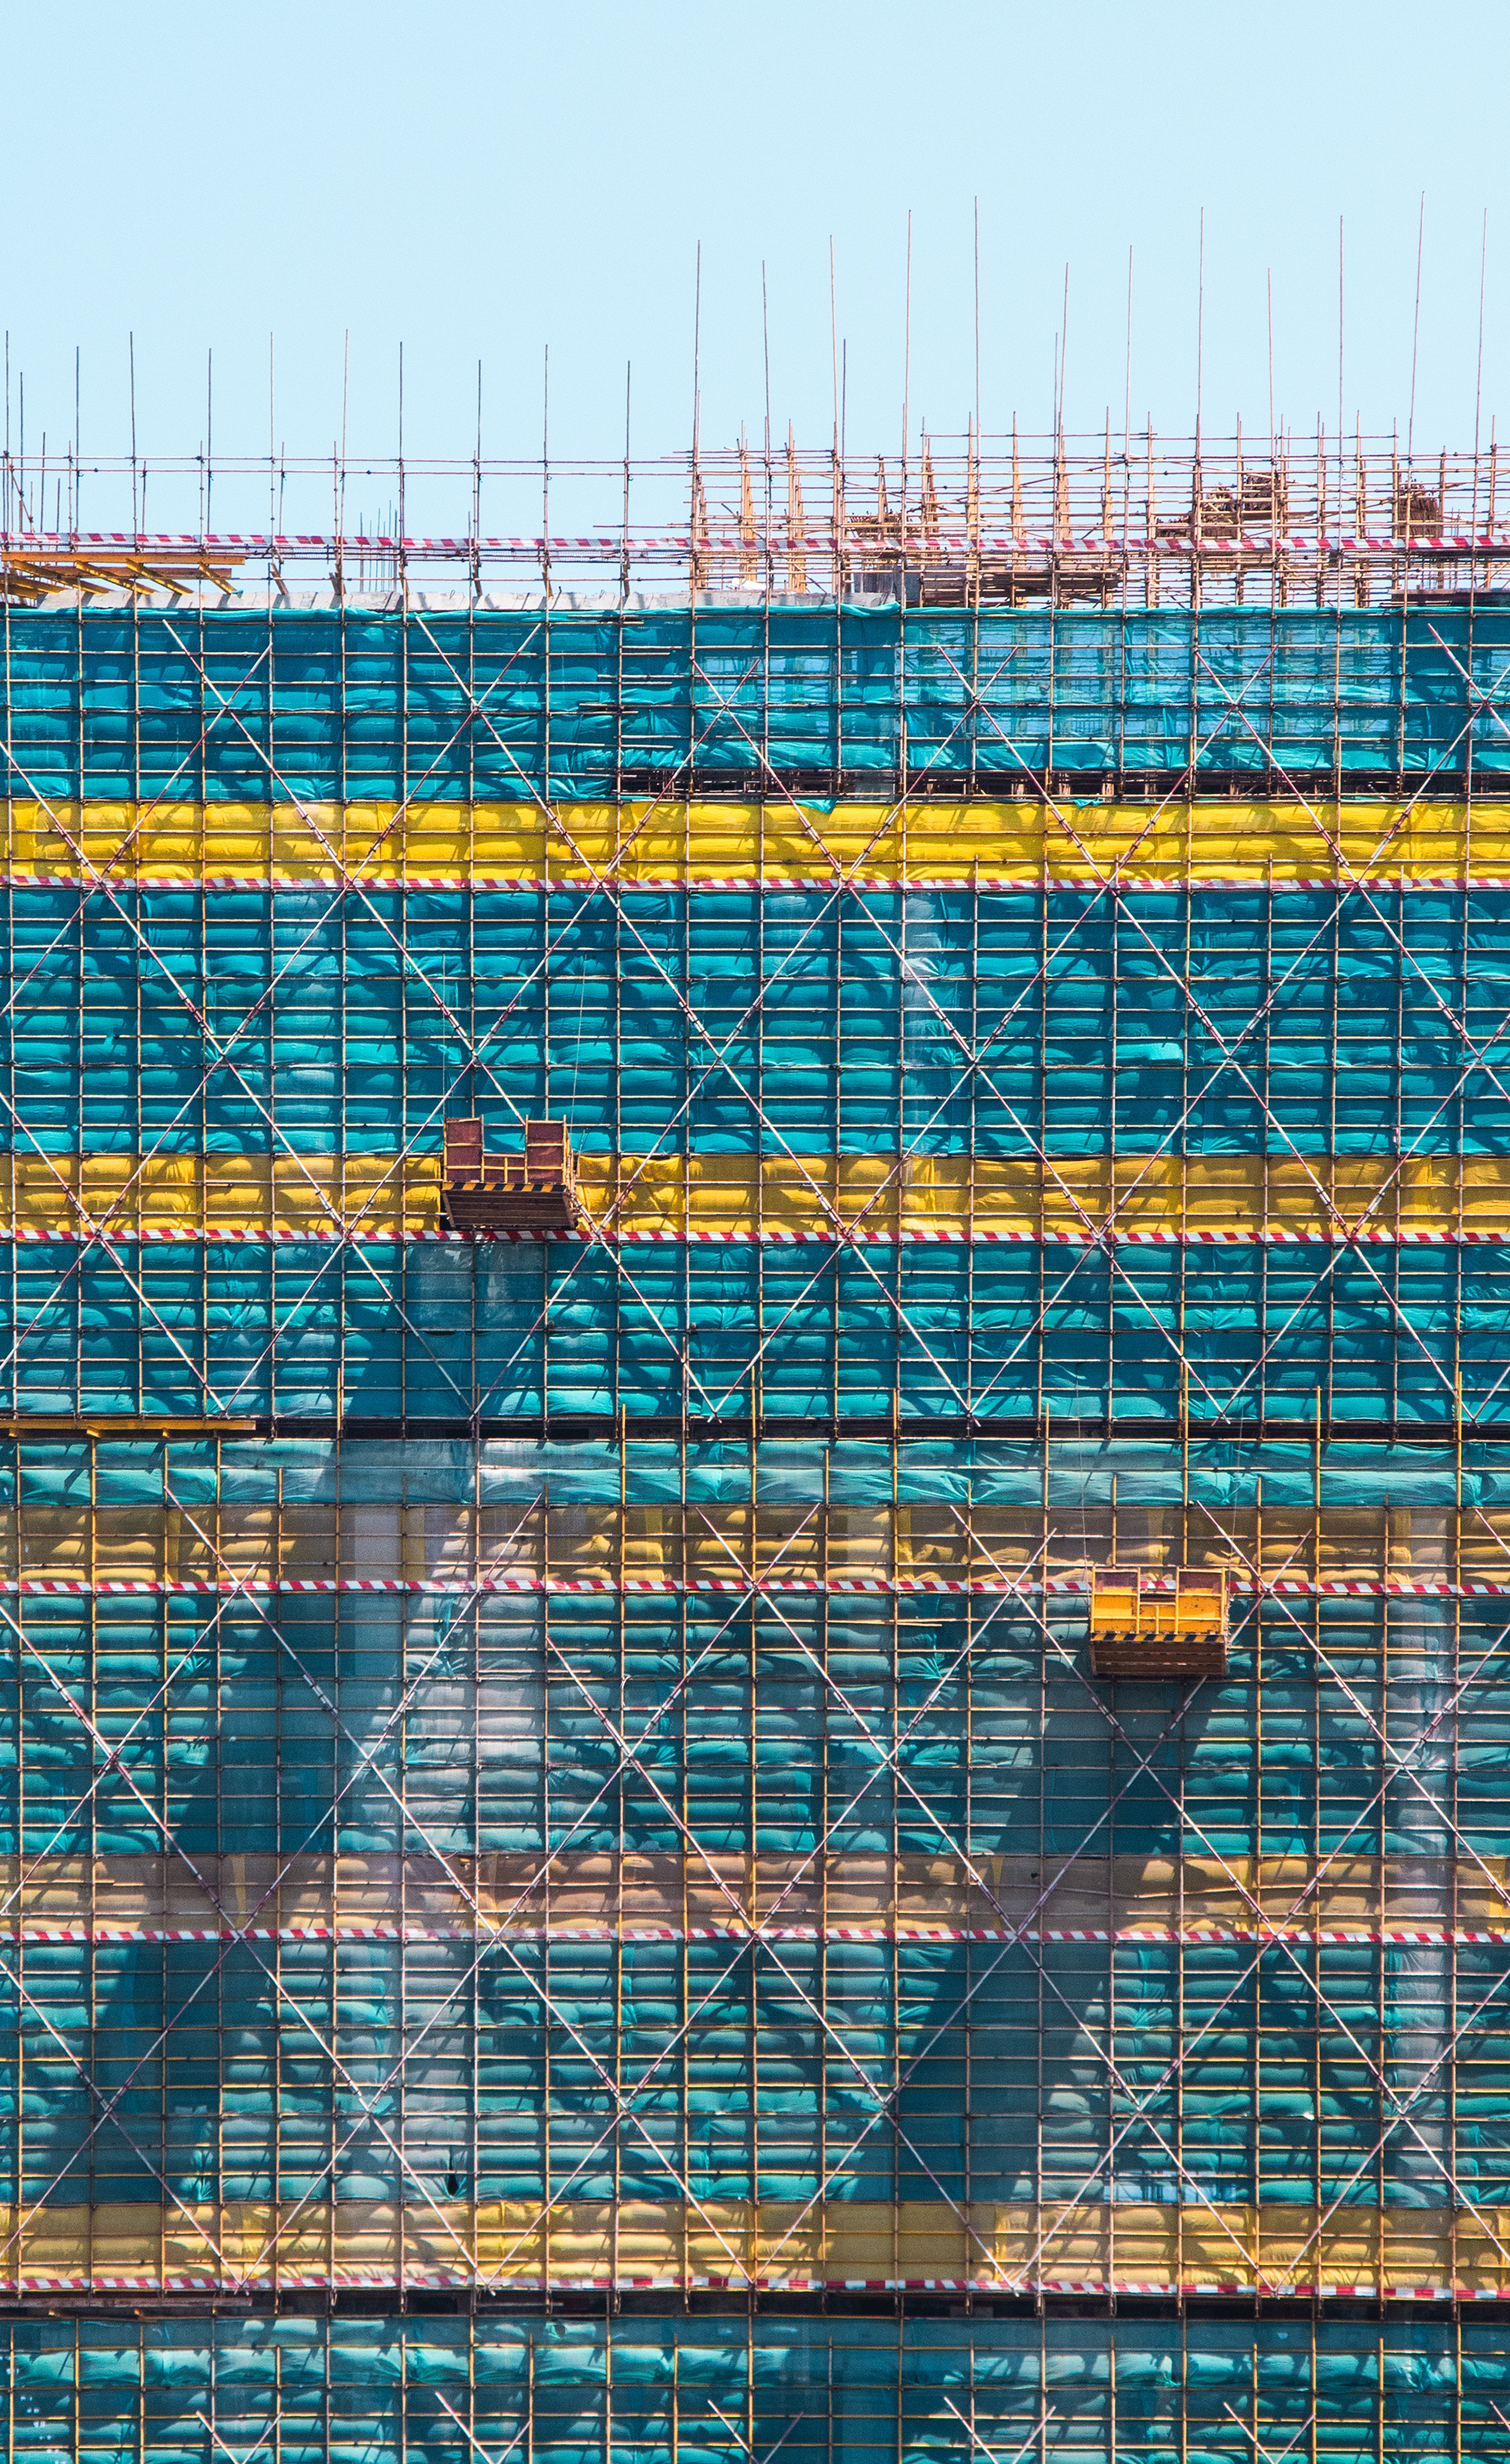 Red scaffolding on blue and yellow shipping containers